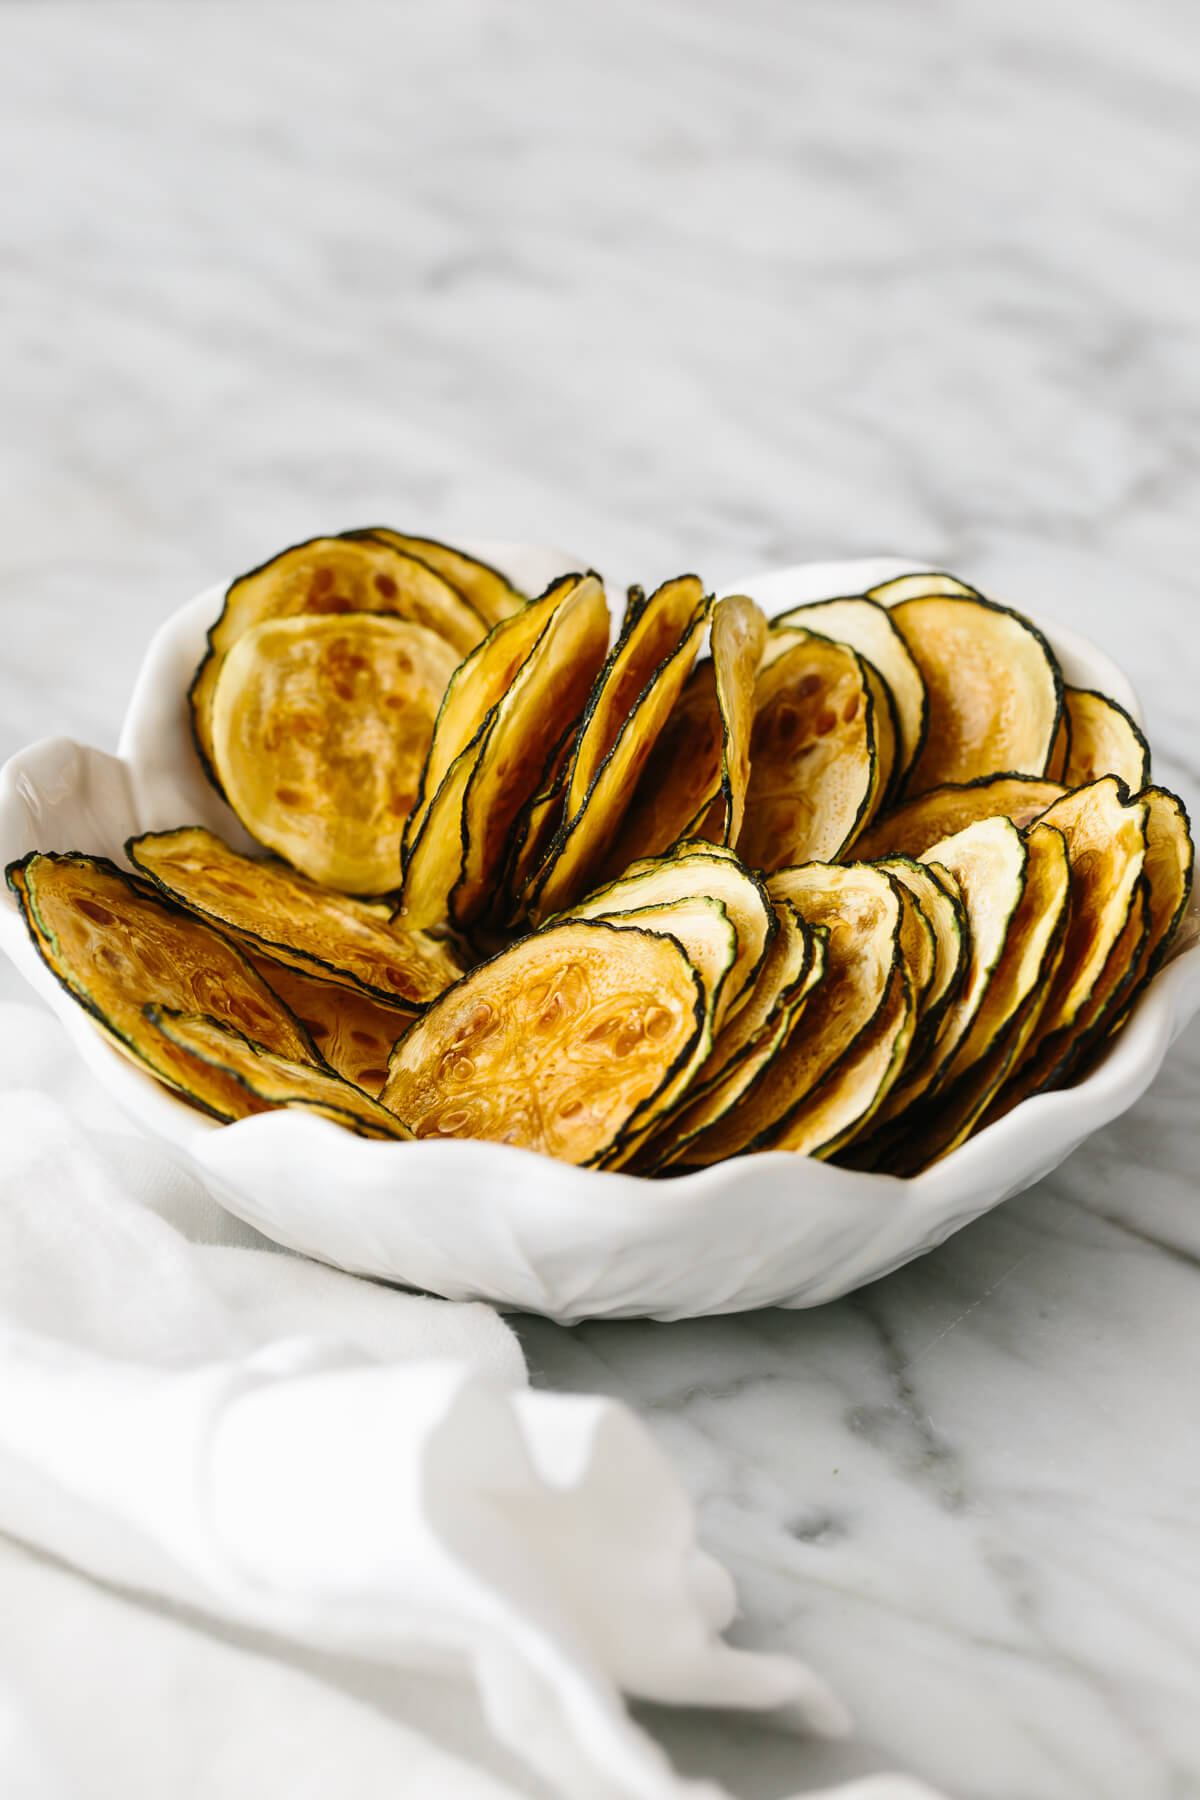 Sliced and baked zucchini chips in a white bowl on a table.